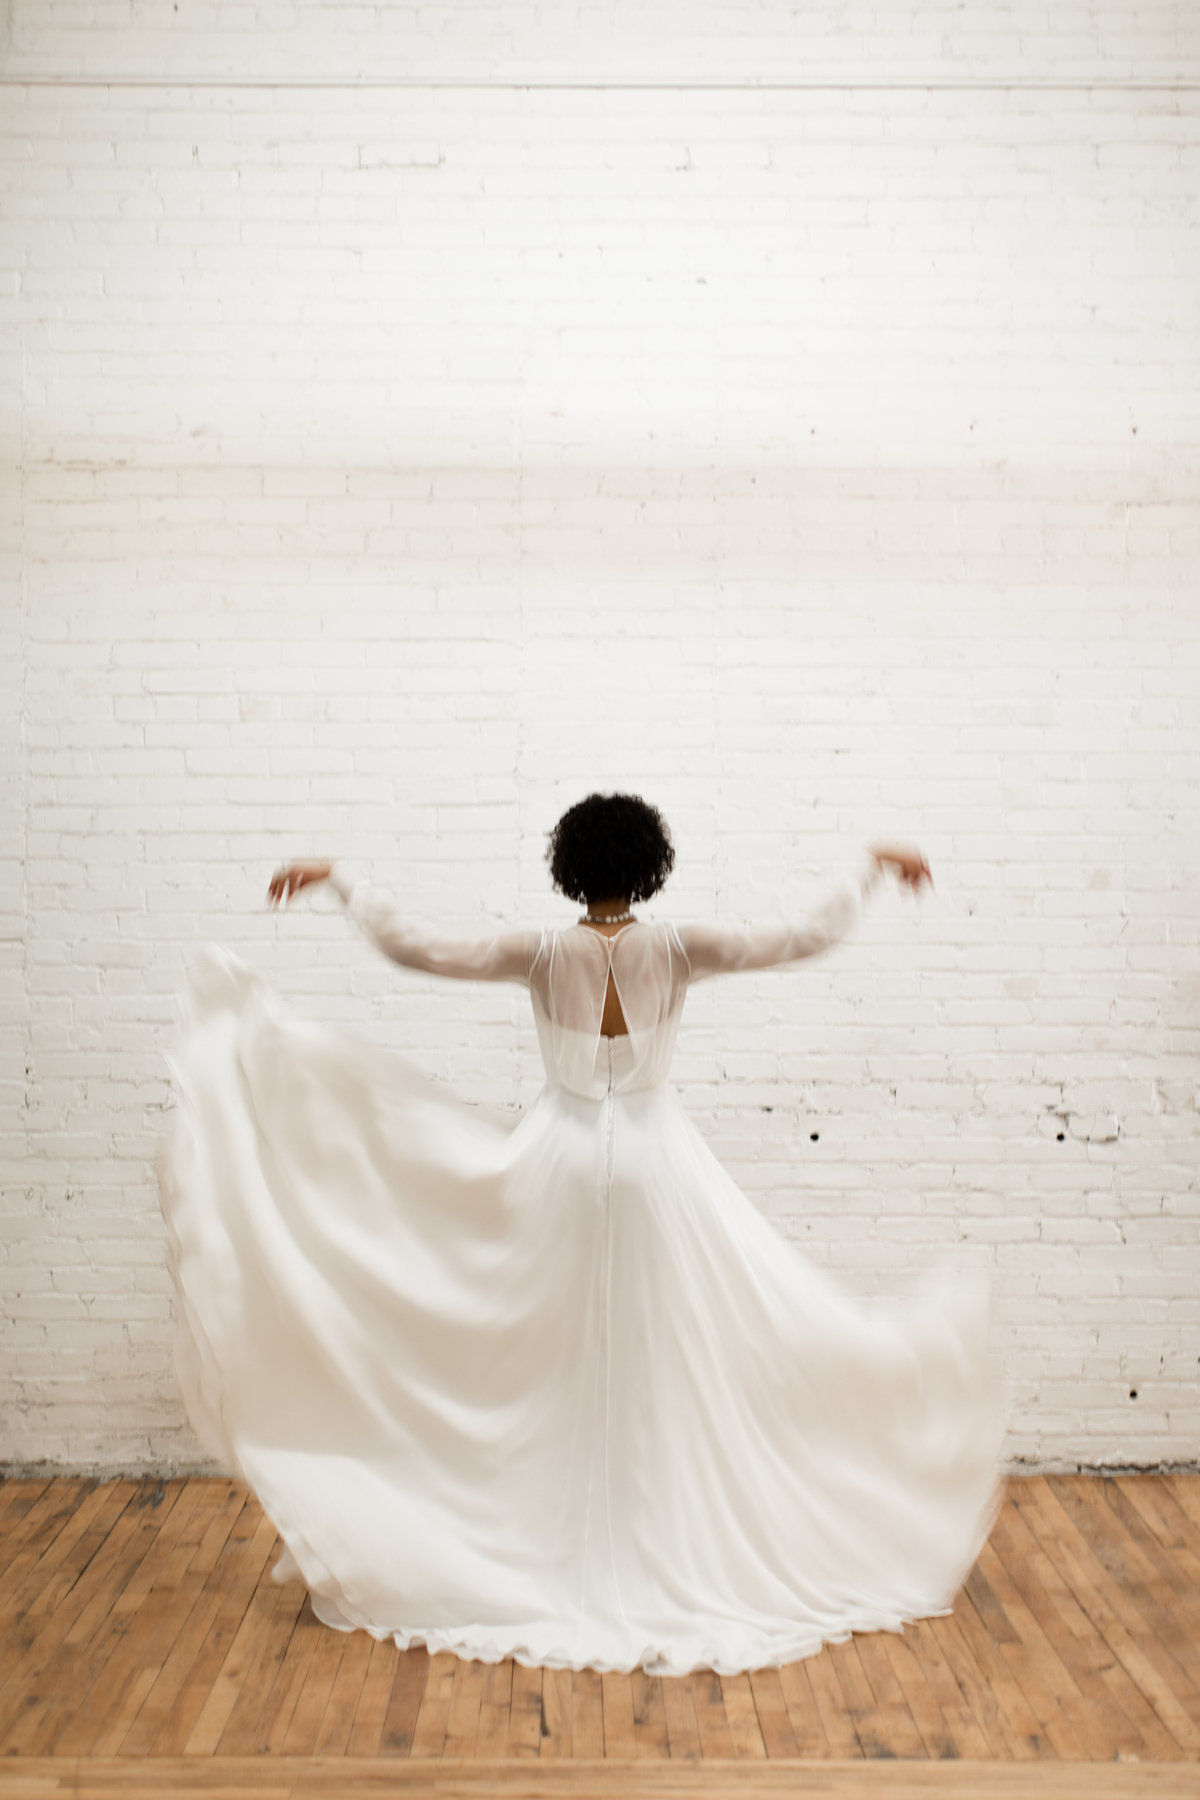 Modehaus_Wedding_studio_shoot_model_in_flowing_longsleeve_dress